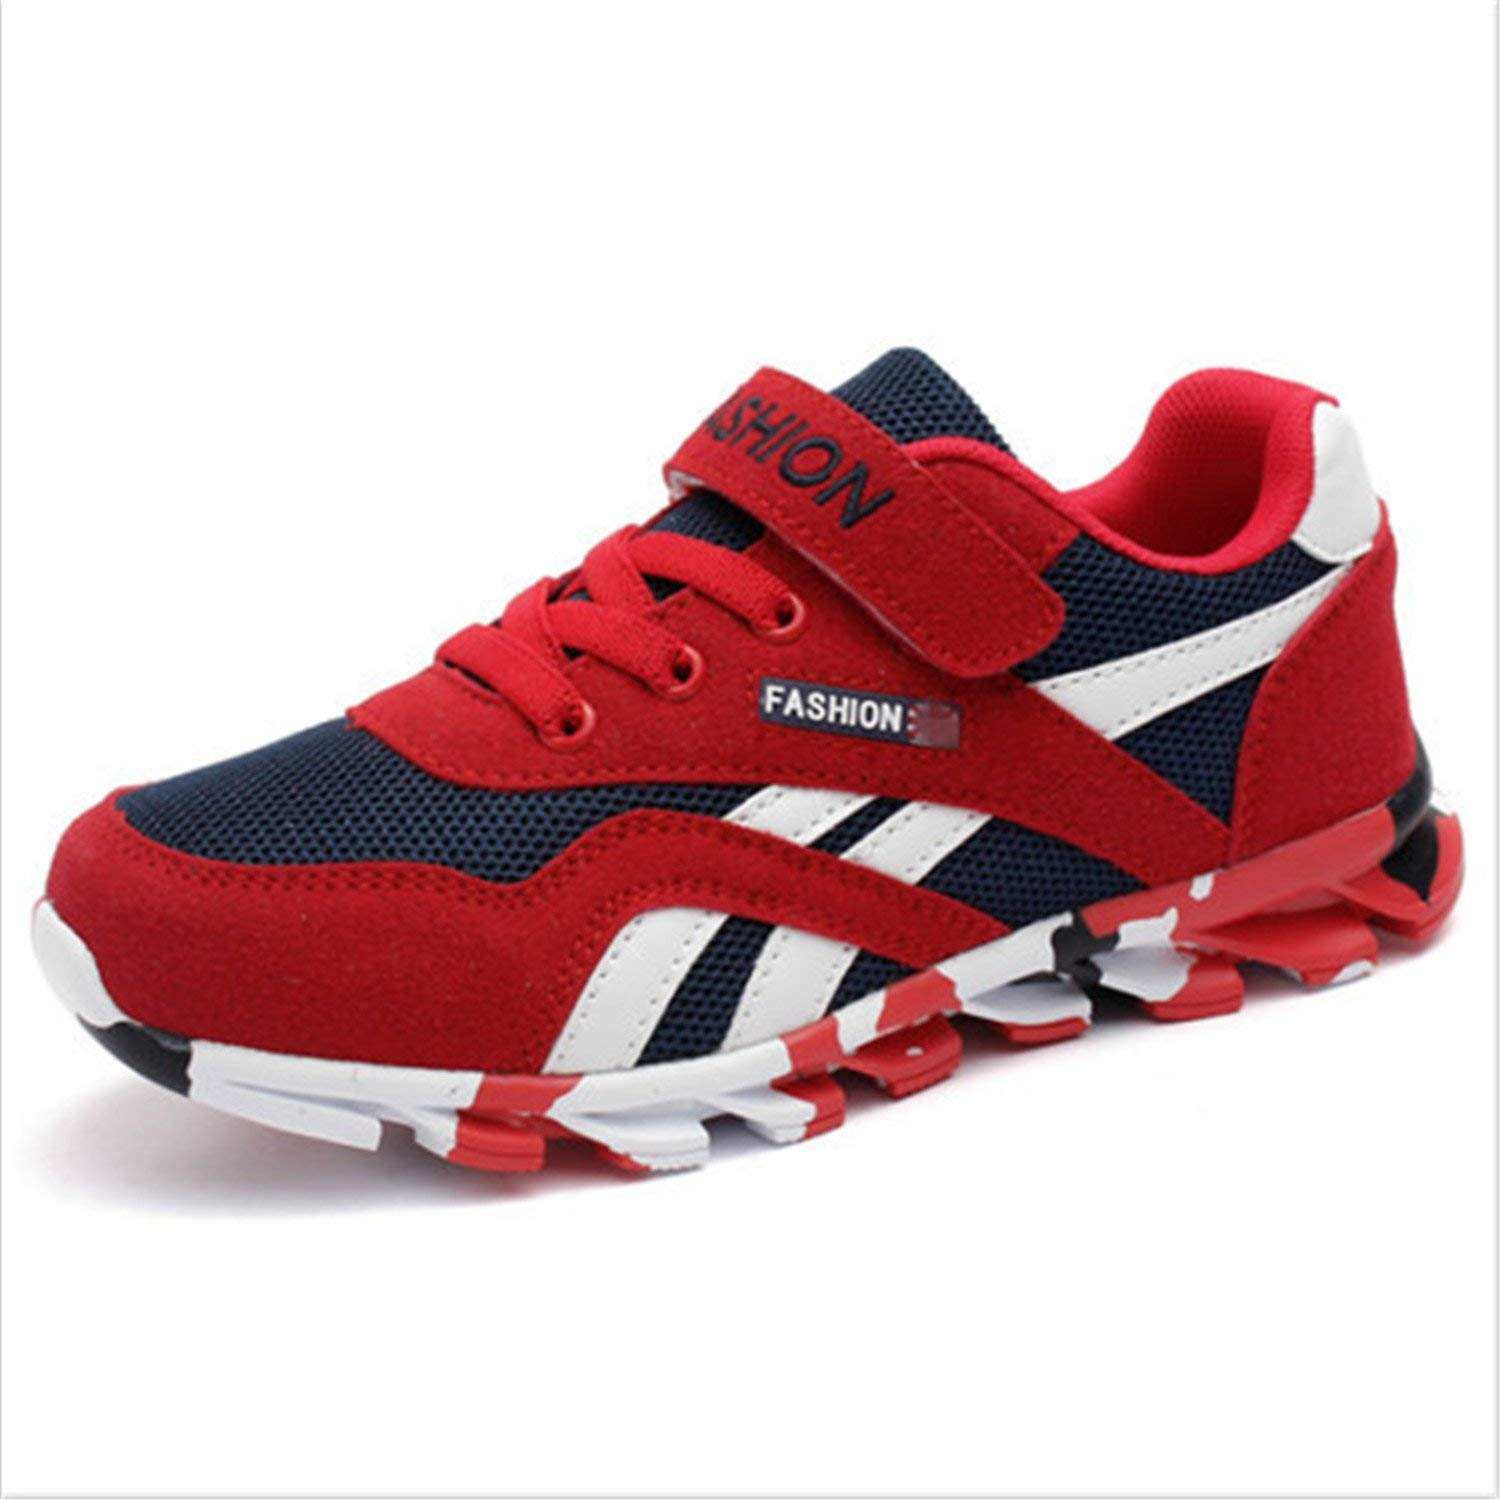 Batsomer Children Shoes Boys/Girls Sneakers Sports Shoes Breathable Running Shoes